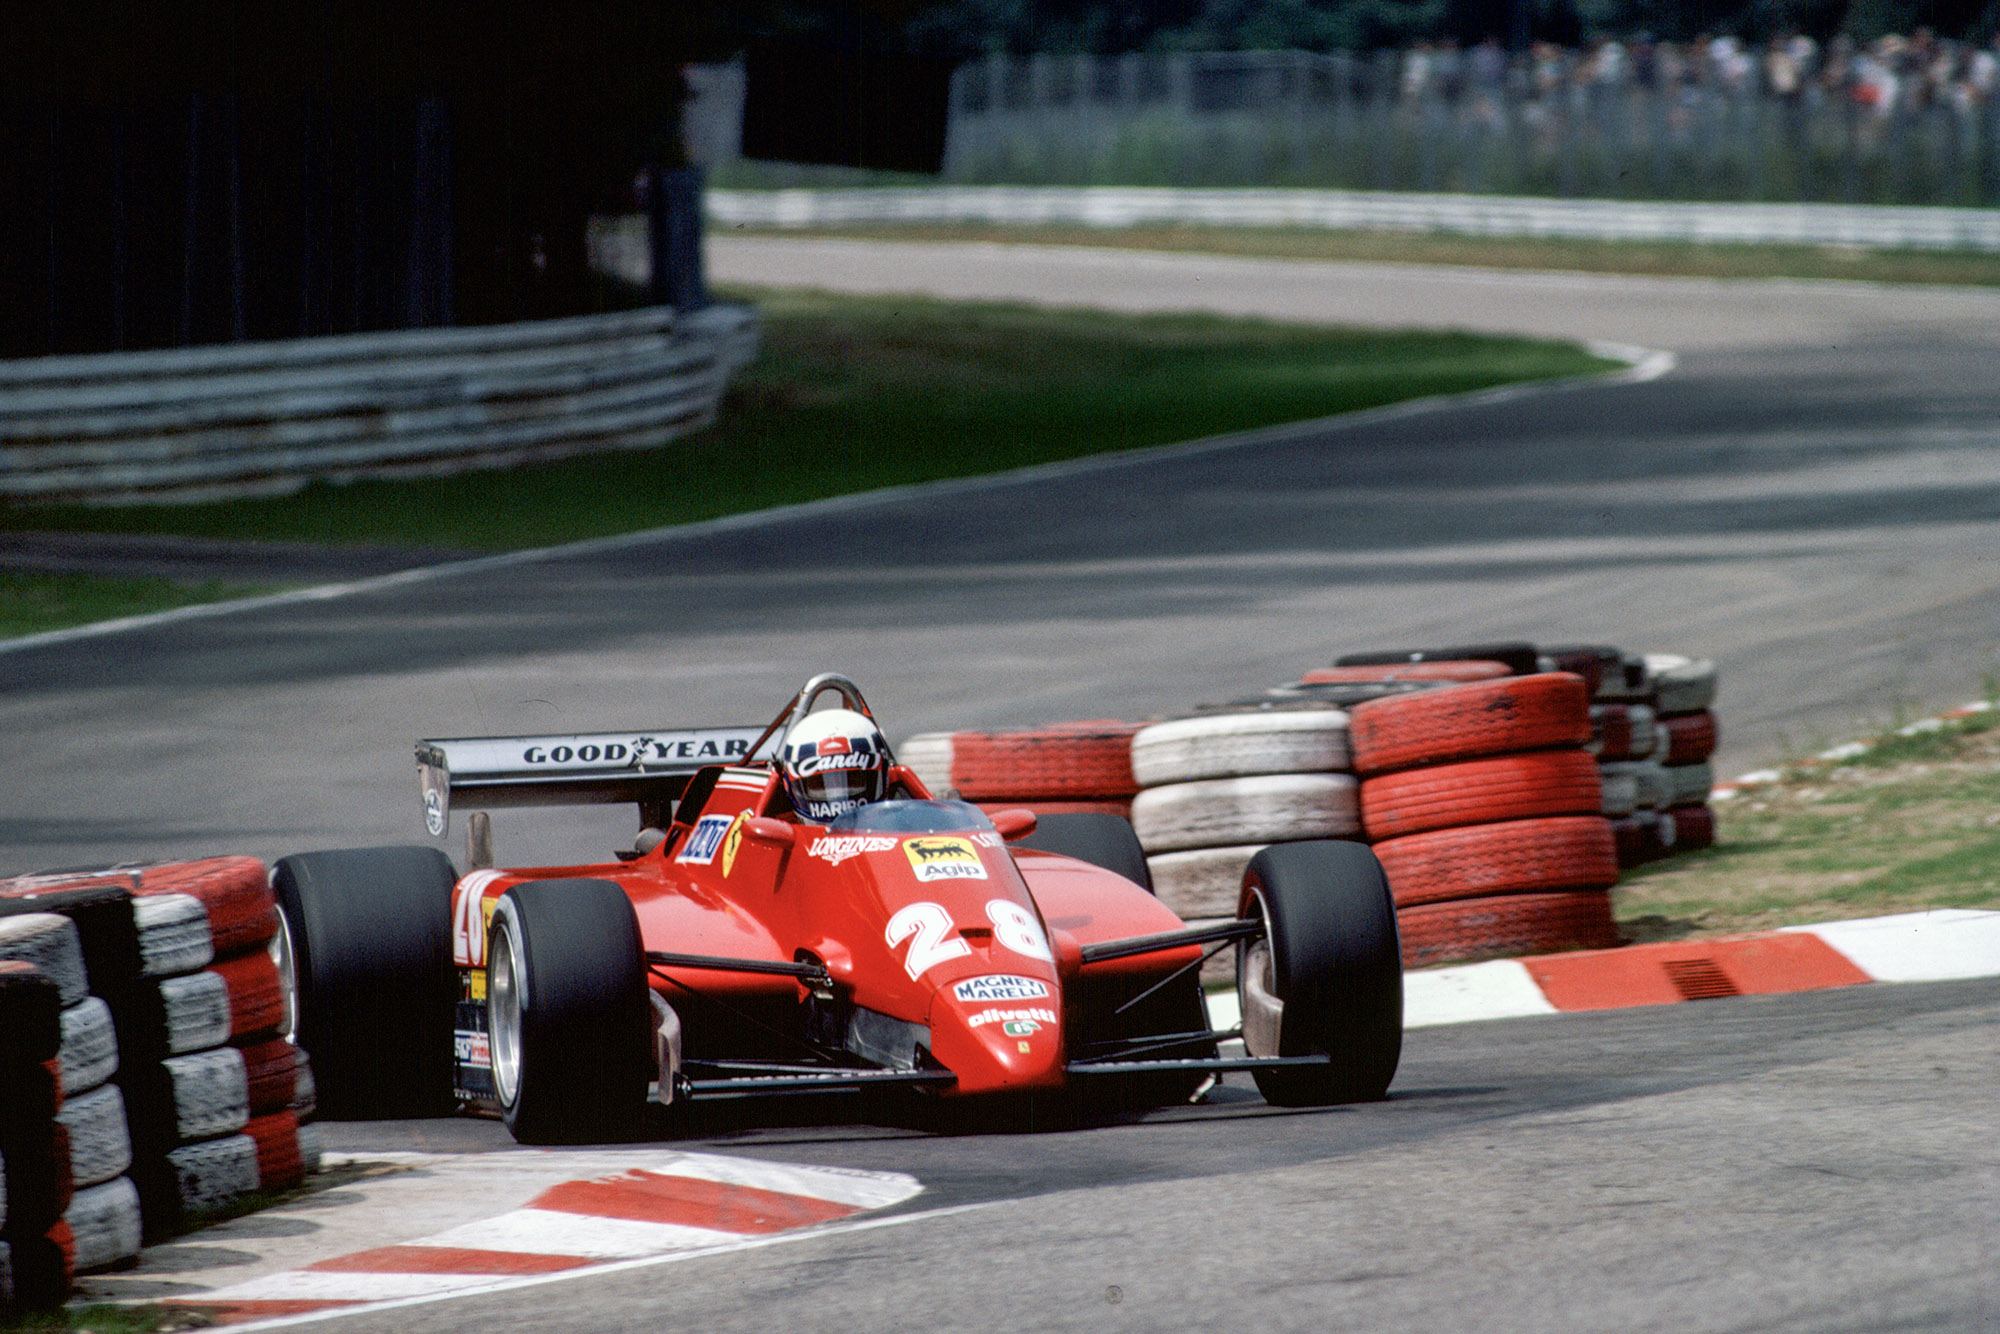 Dider Pironi exits the chicane during the 1982 German Grand Prix